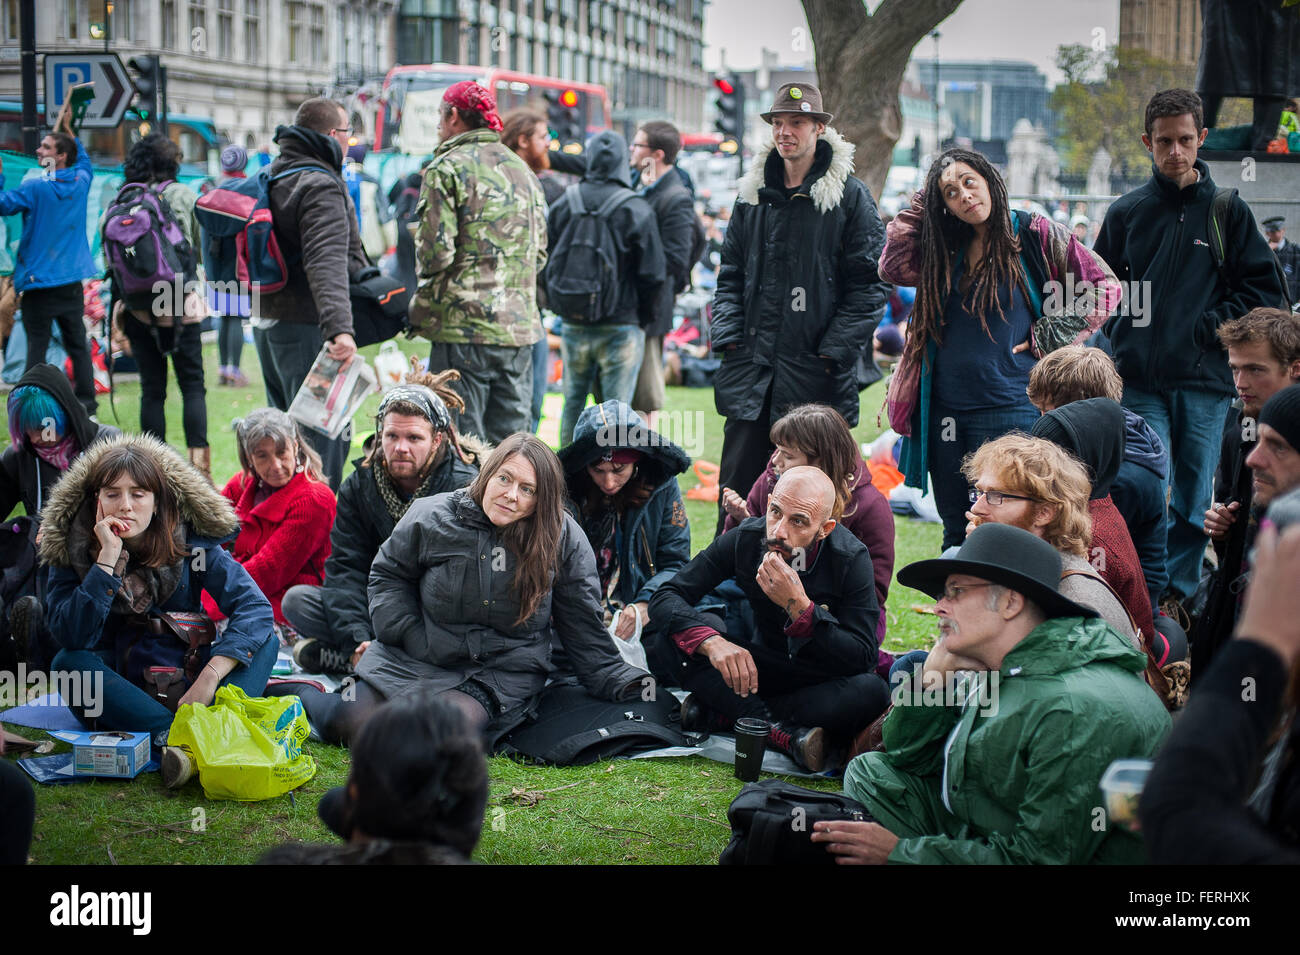 Attentive activists listening to a talk at Occupy Parliament Square, London - Stock Image